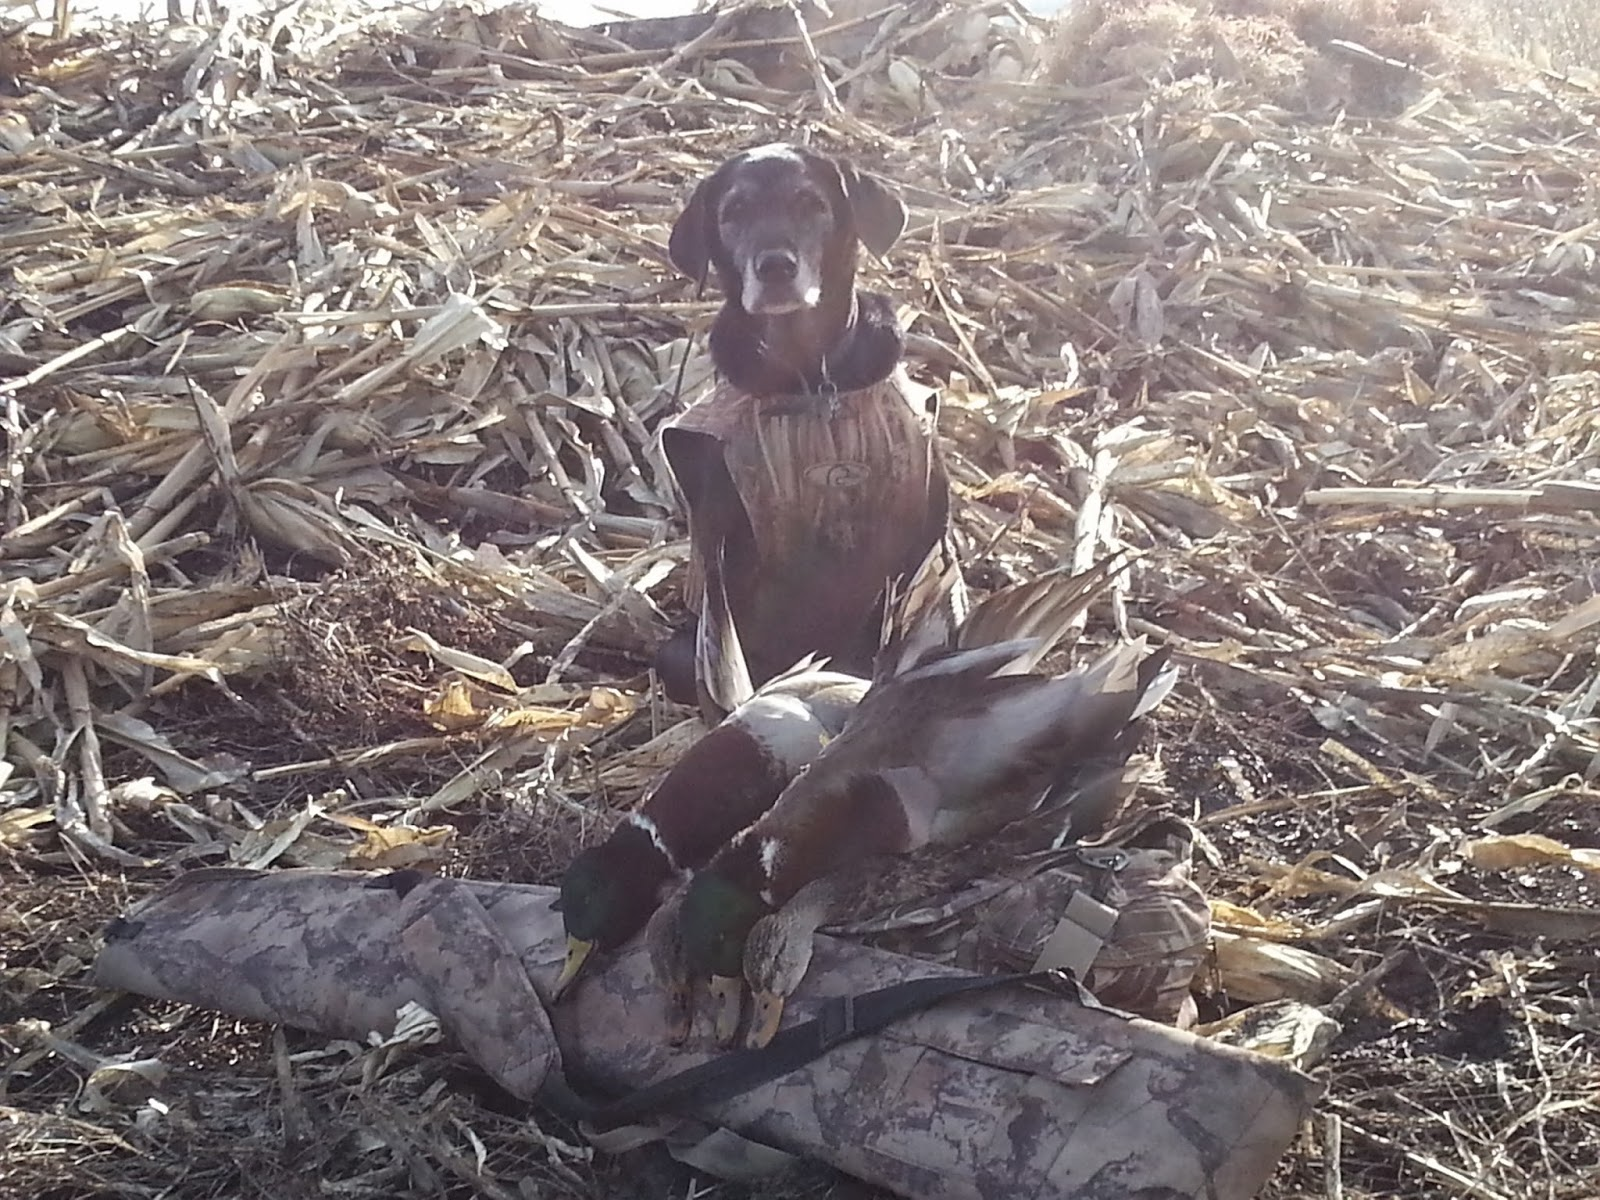 Benefits of duck hunting with a well-trained dog